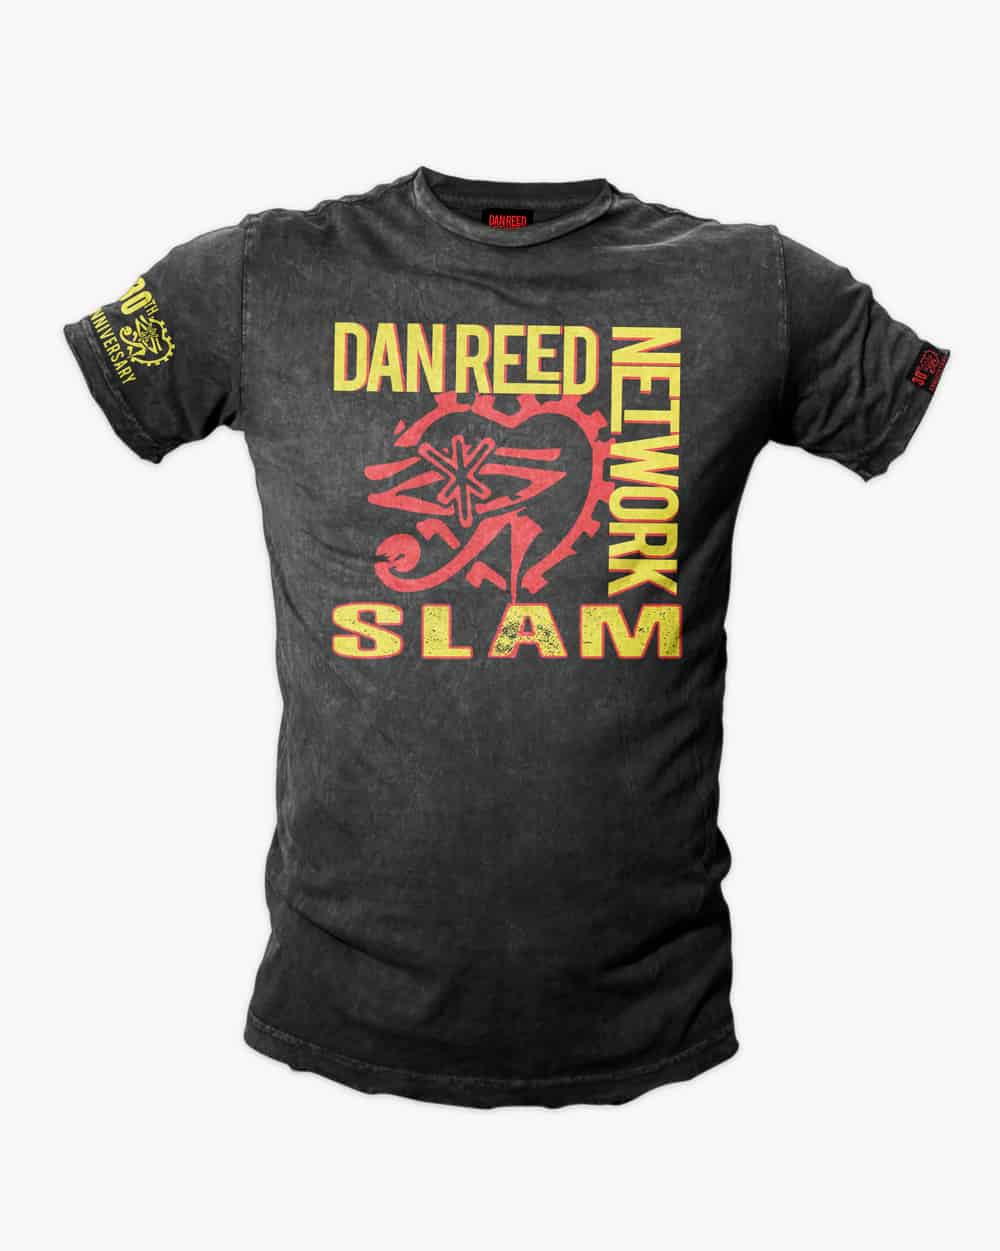 Buy Online Dan Reed Network - SLAM 30th ANNIVERSARY TOUR T-SHIRT